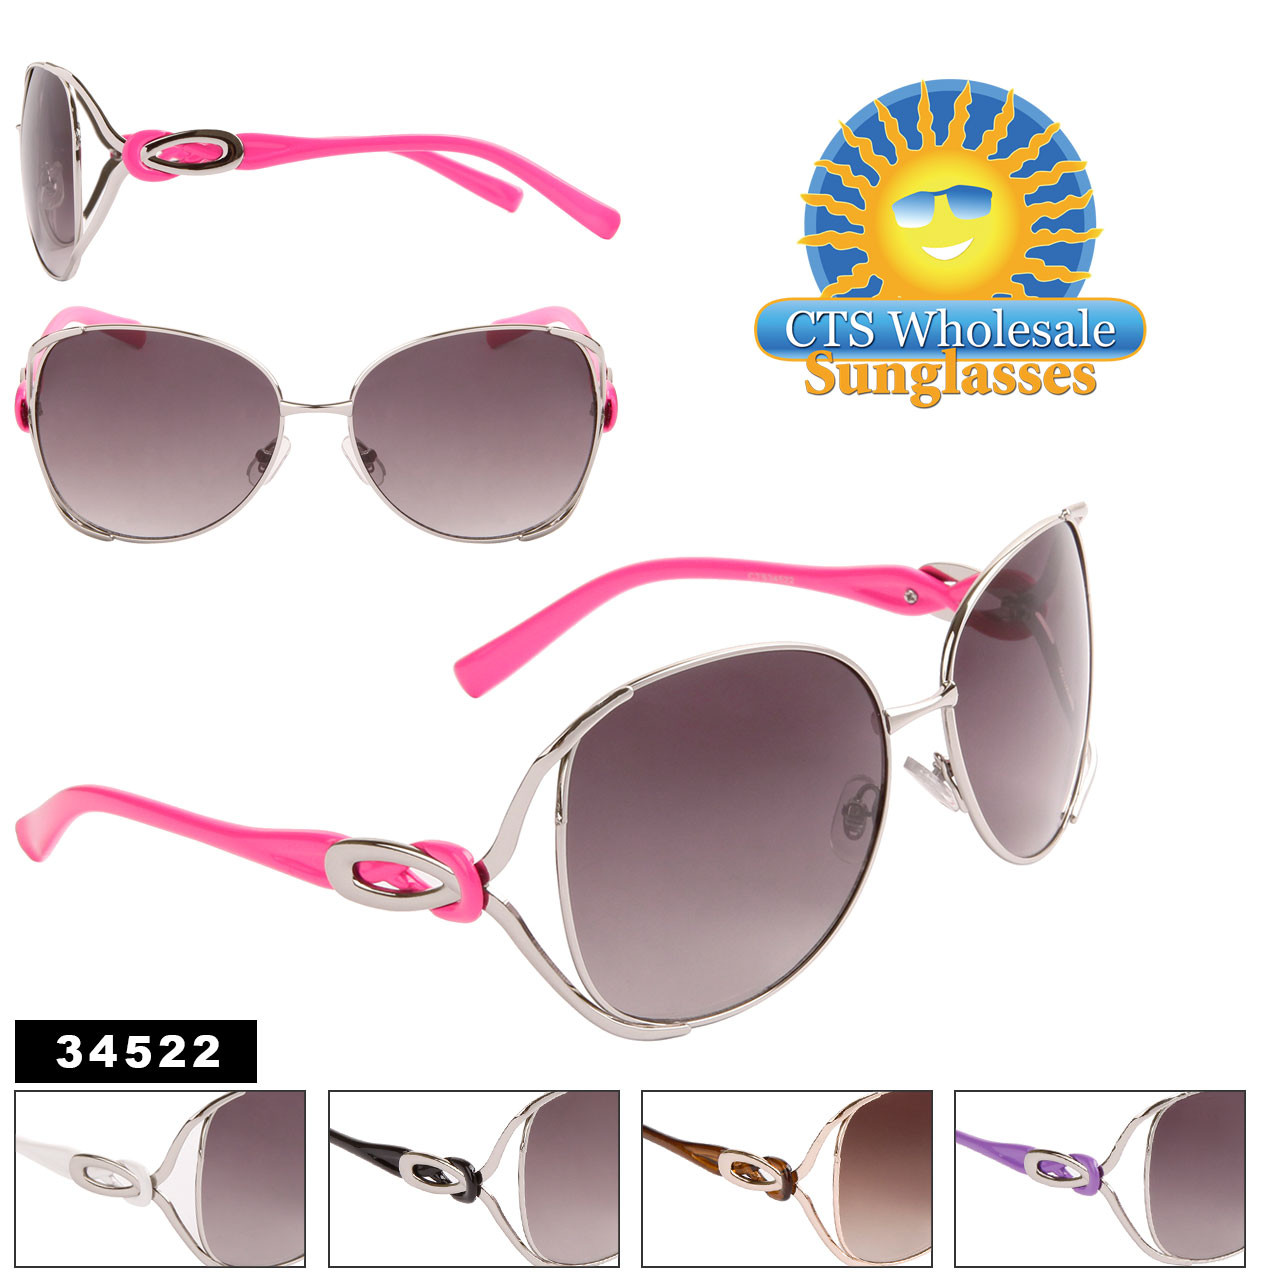 Women's Sunglasses by the Dozen - 34522